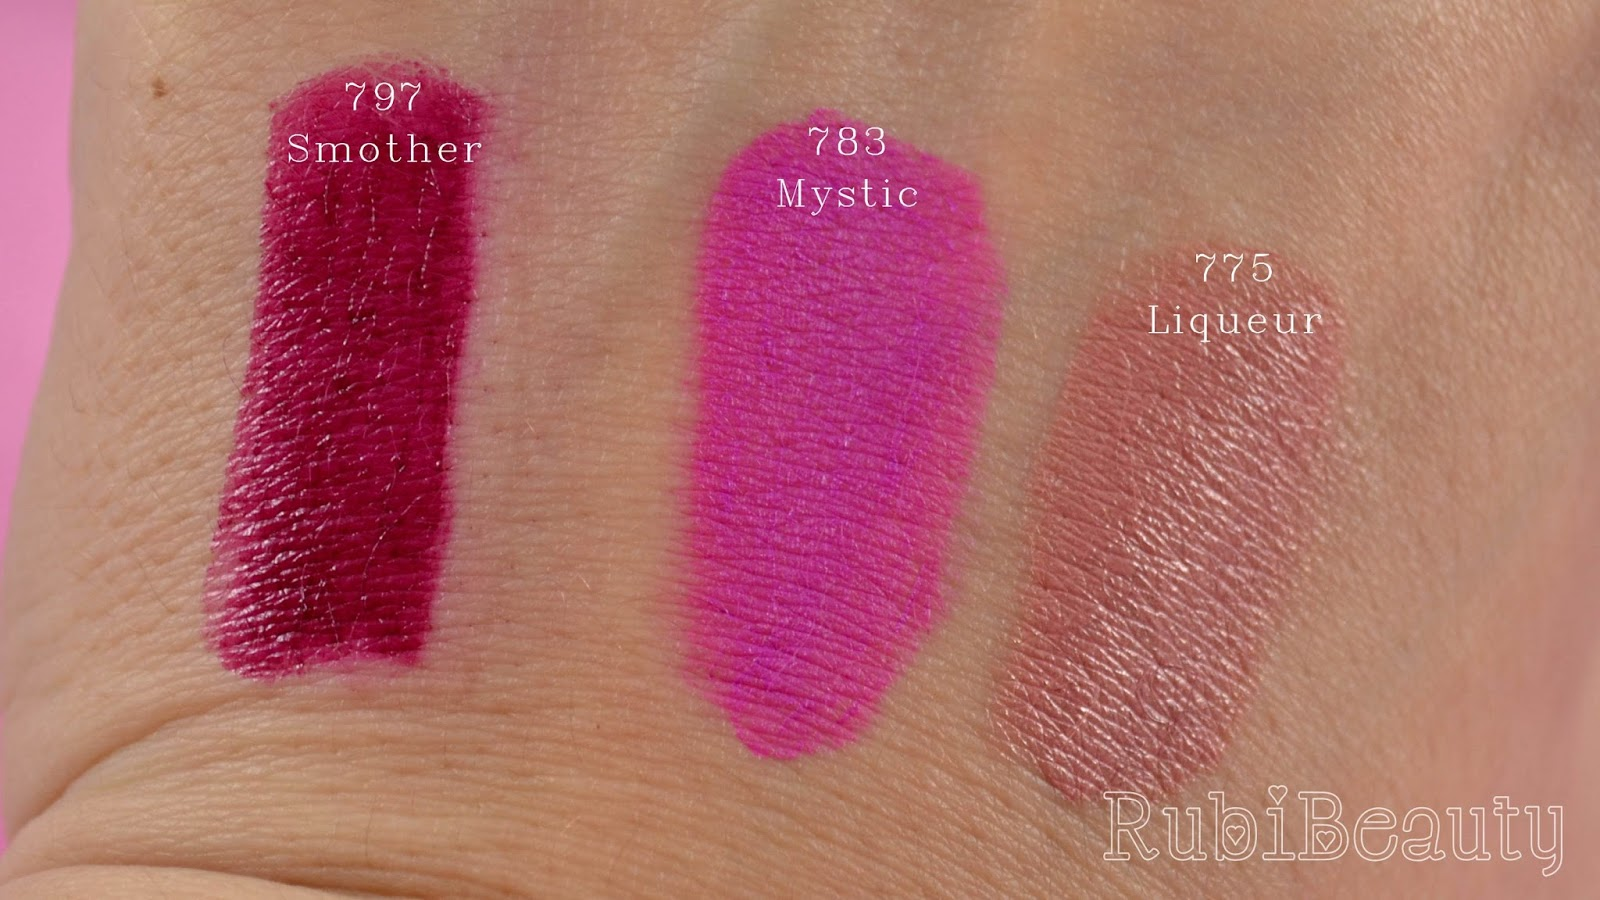 rubibeauty labiales sleek swatches clon mac smother mystic Liqueur